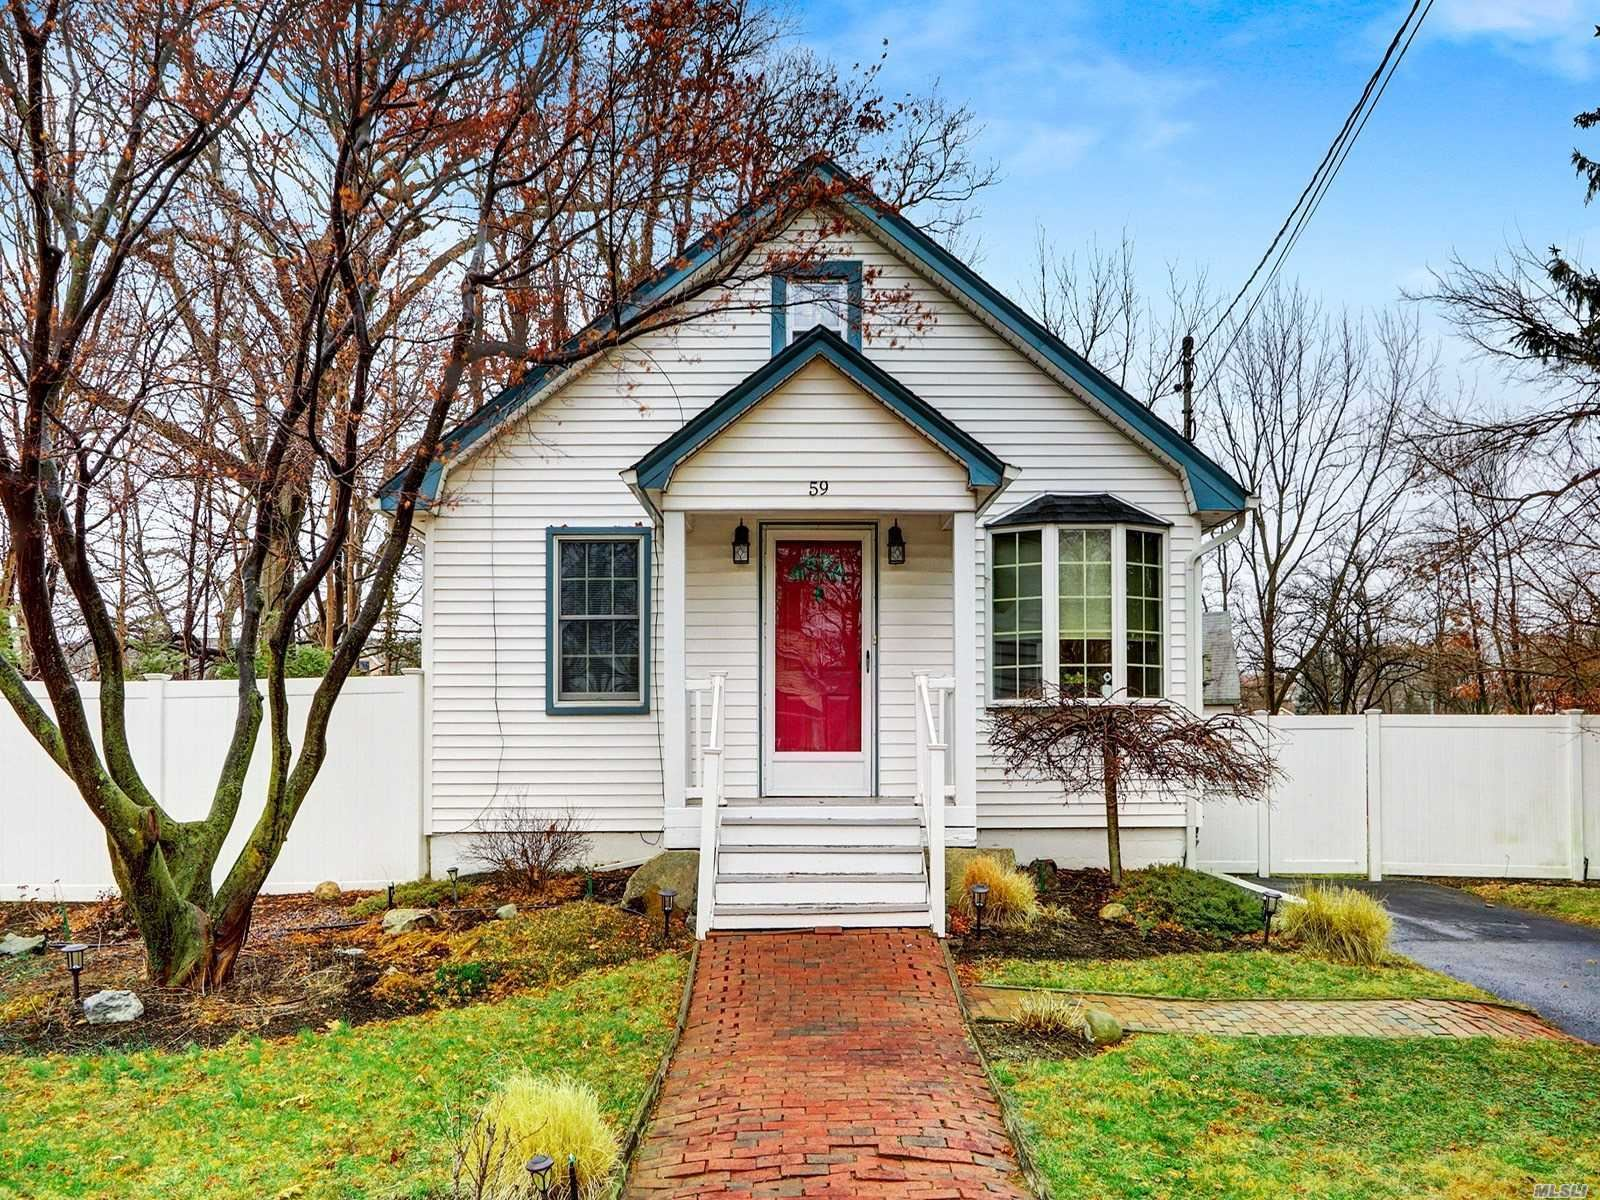 59 Hunter Avenue, North Babylon, NY 11703 - MLS#: 3195348